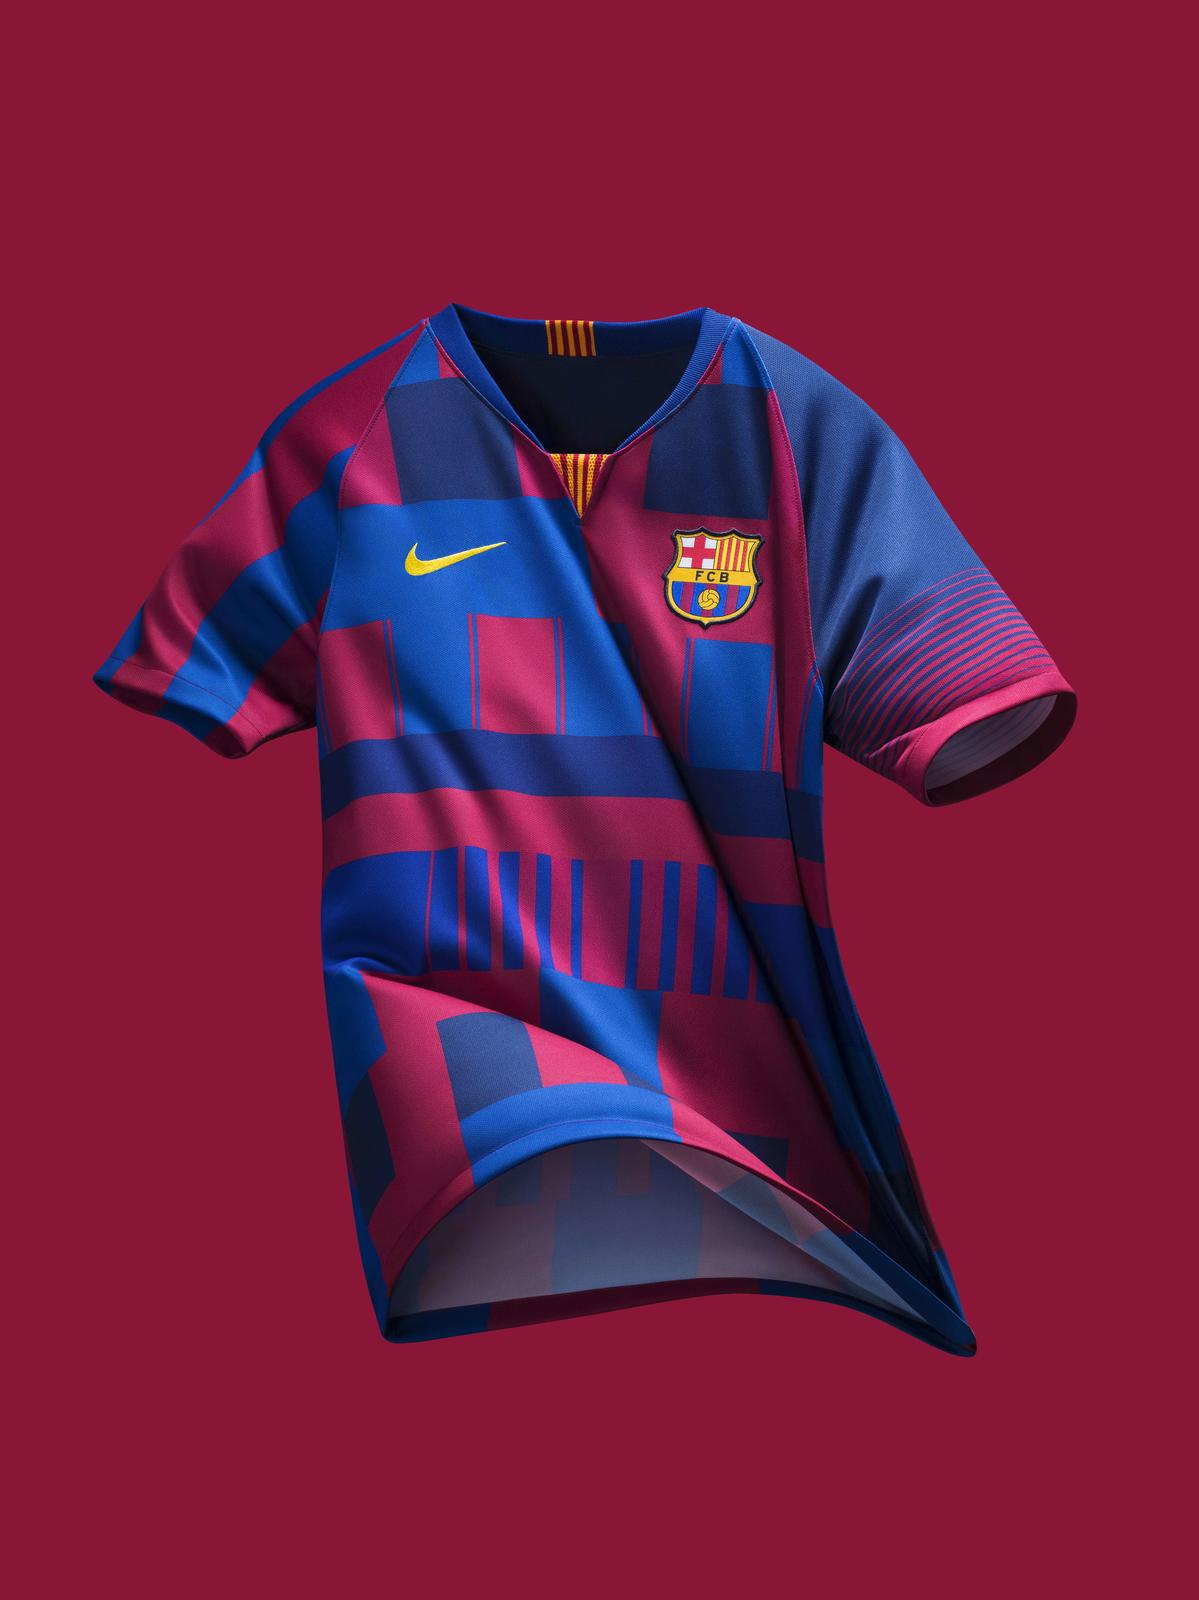 best service 2df25 0177b FC Barcelona What The 20th Anniversary Jersey - Nike News